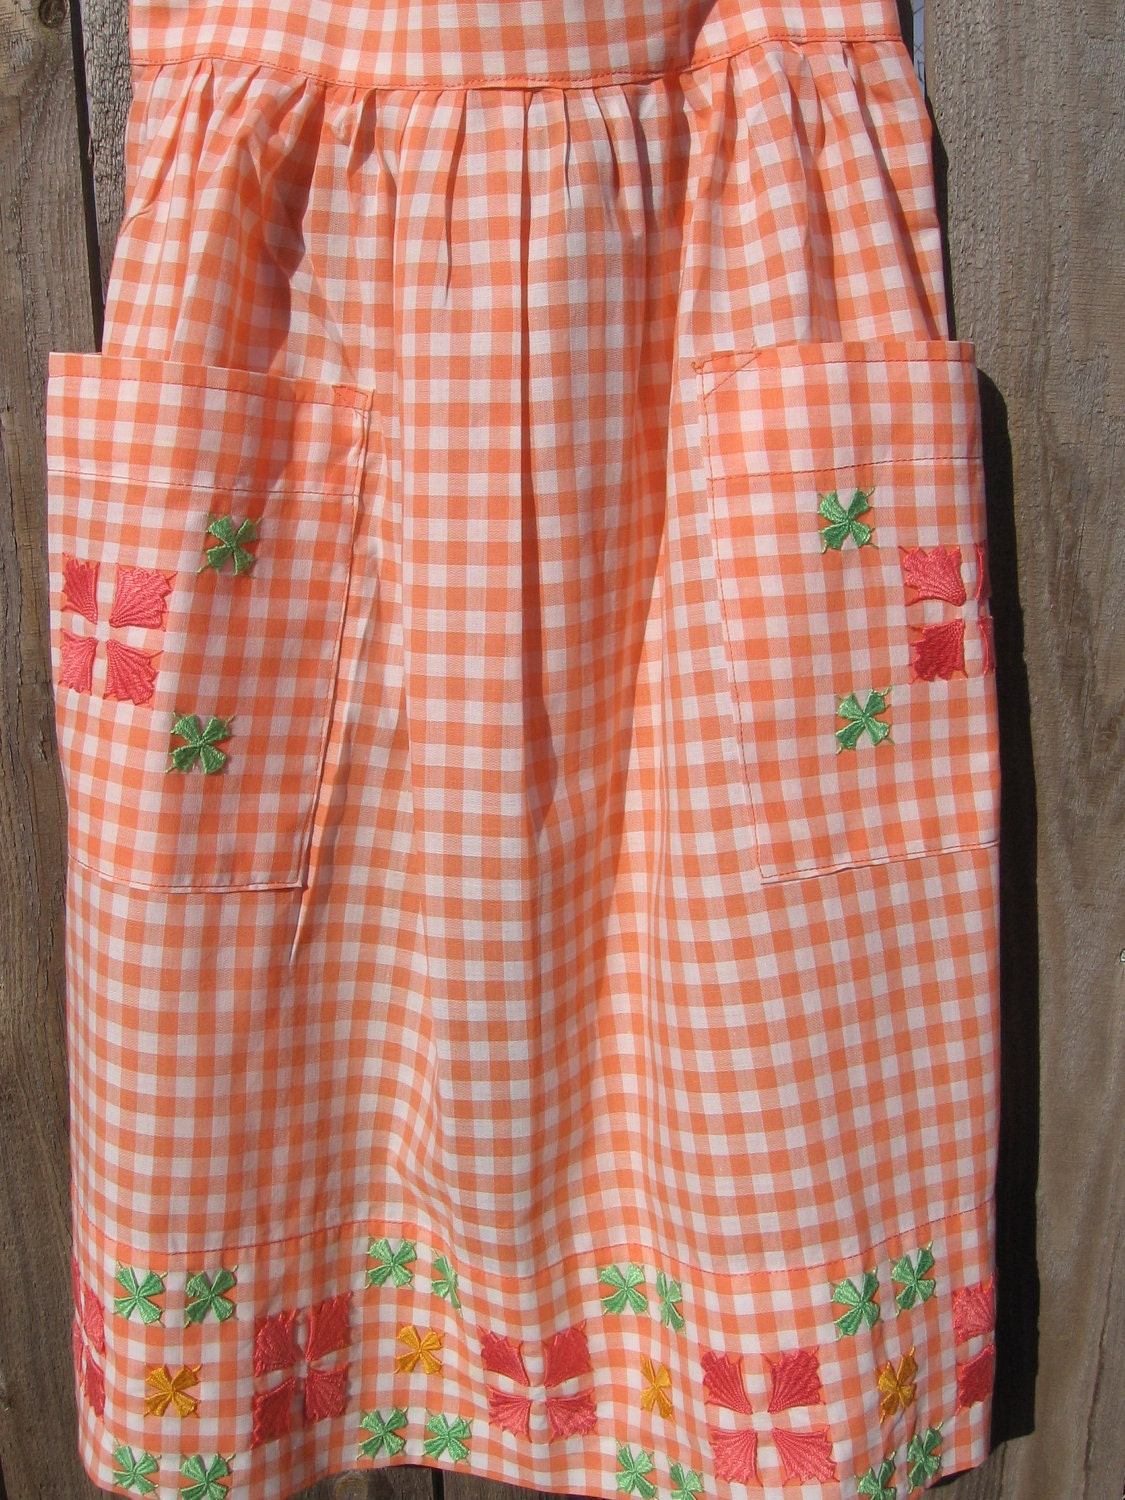 Reduced vintage orange gingham and embroidered apron